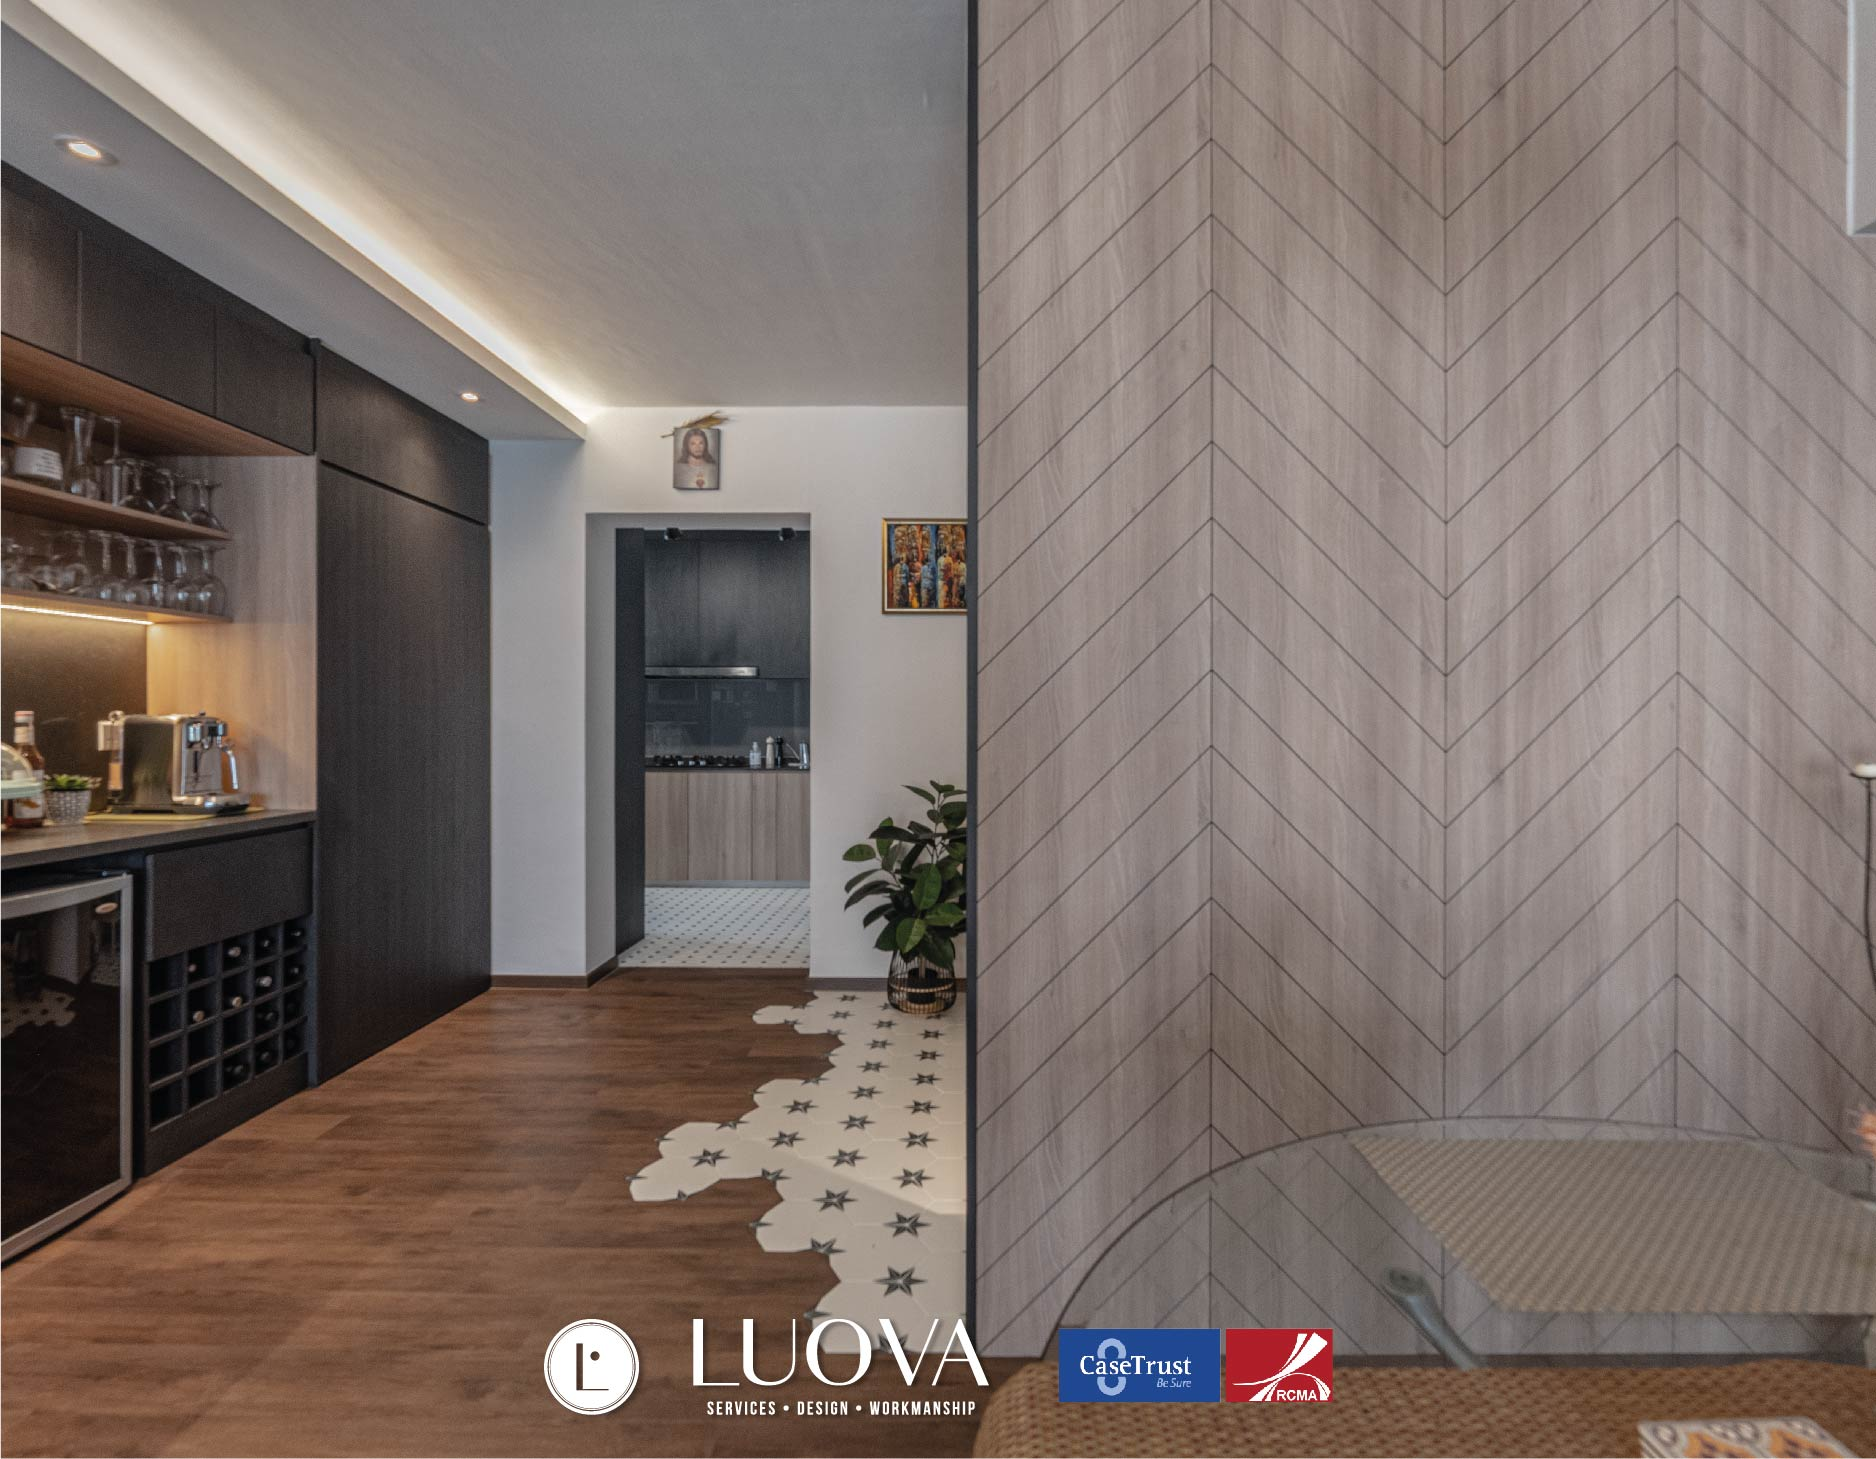 Luova Project Services